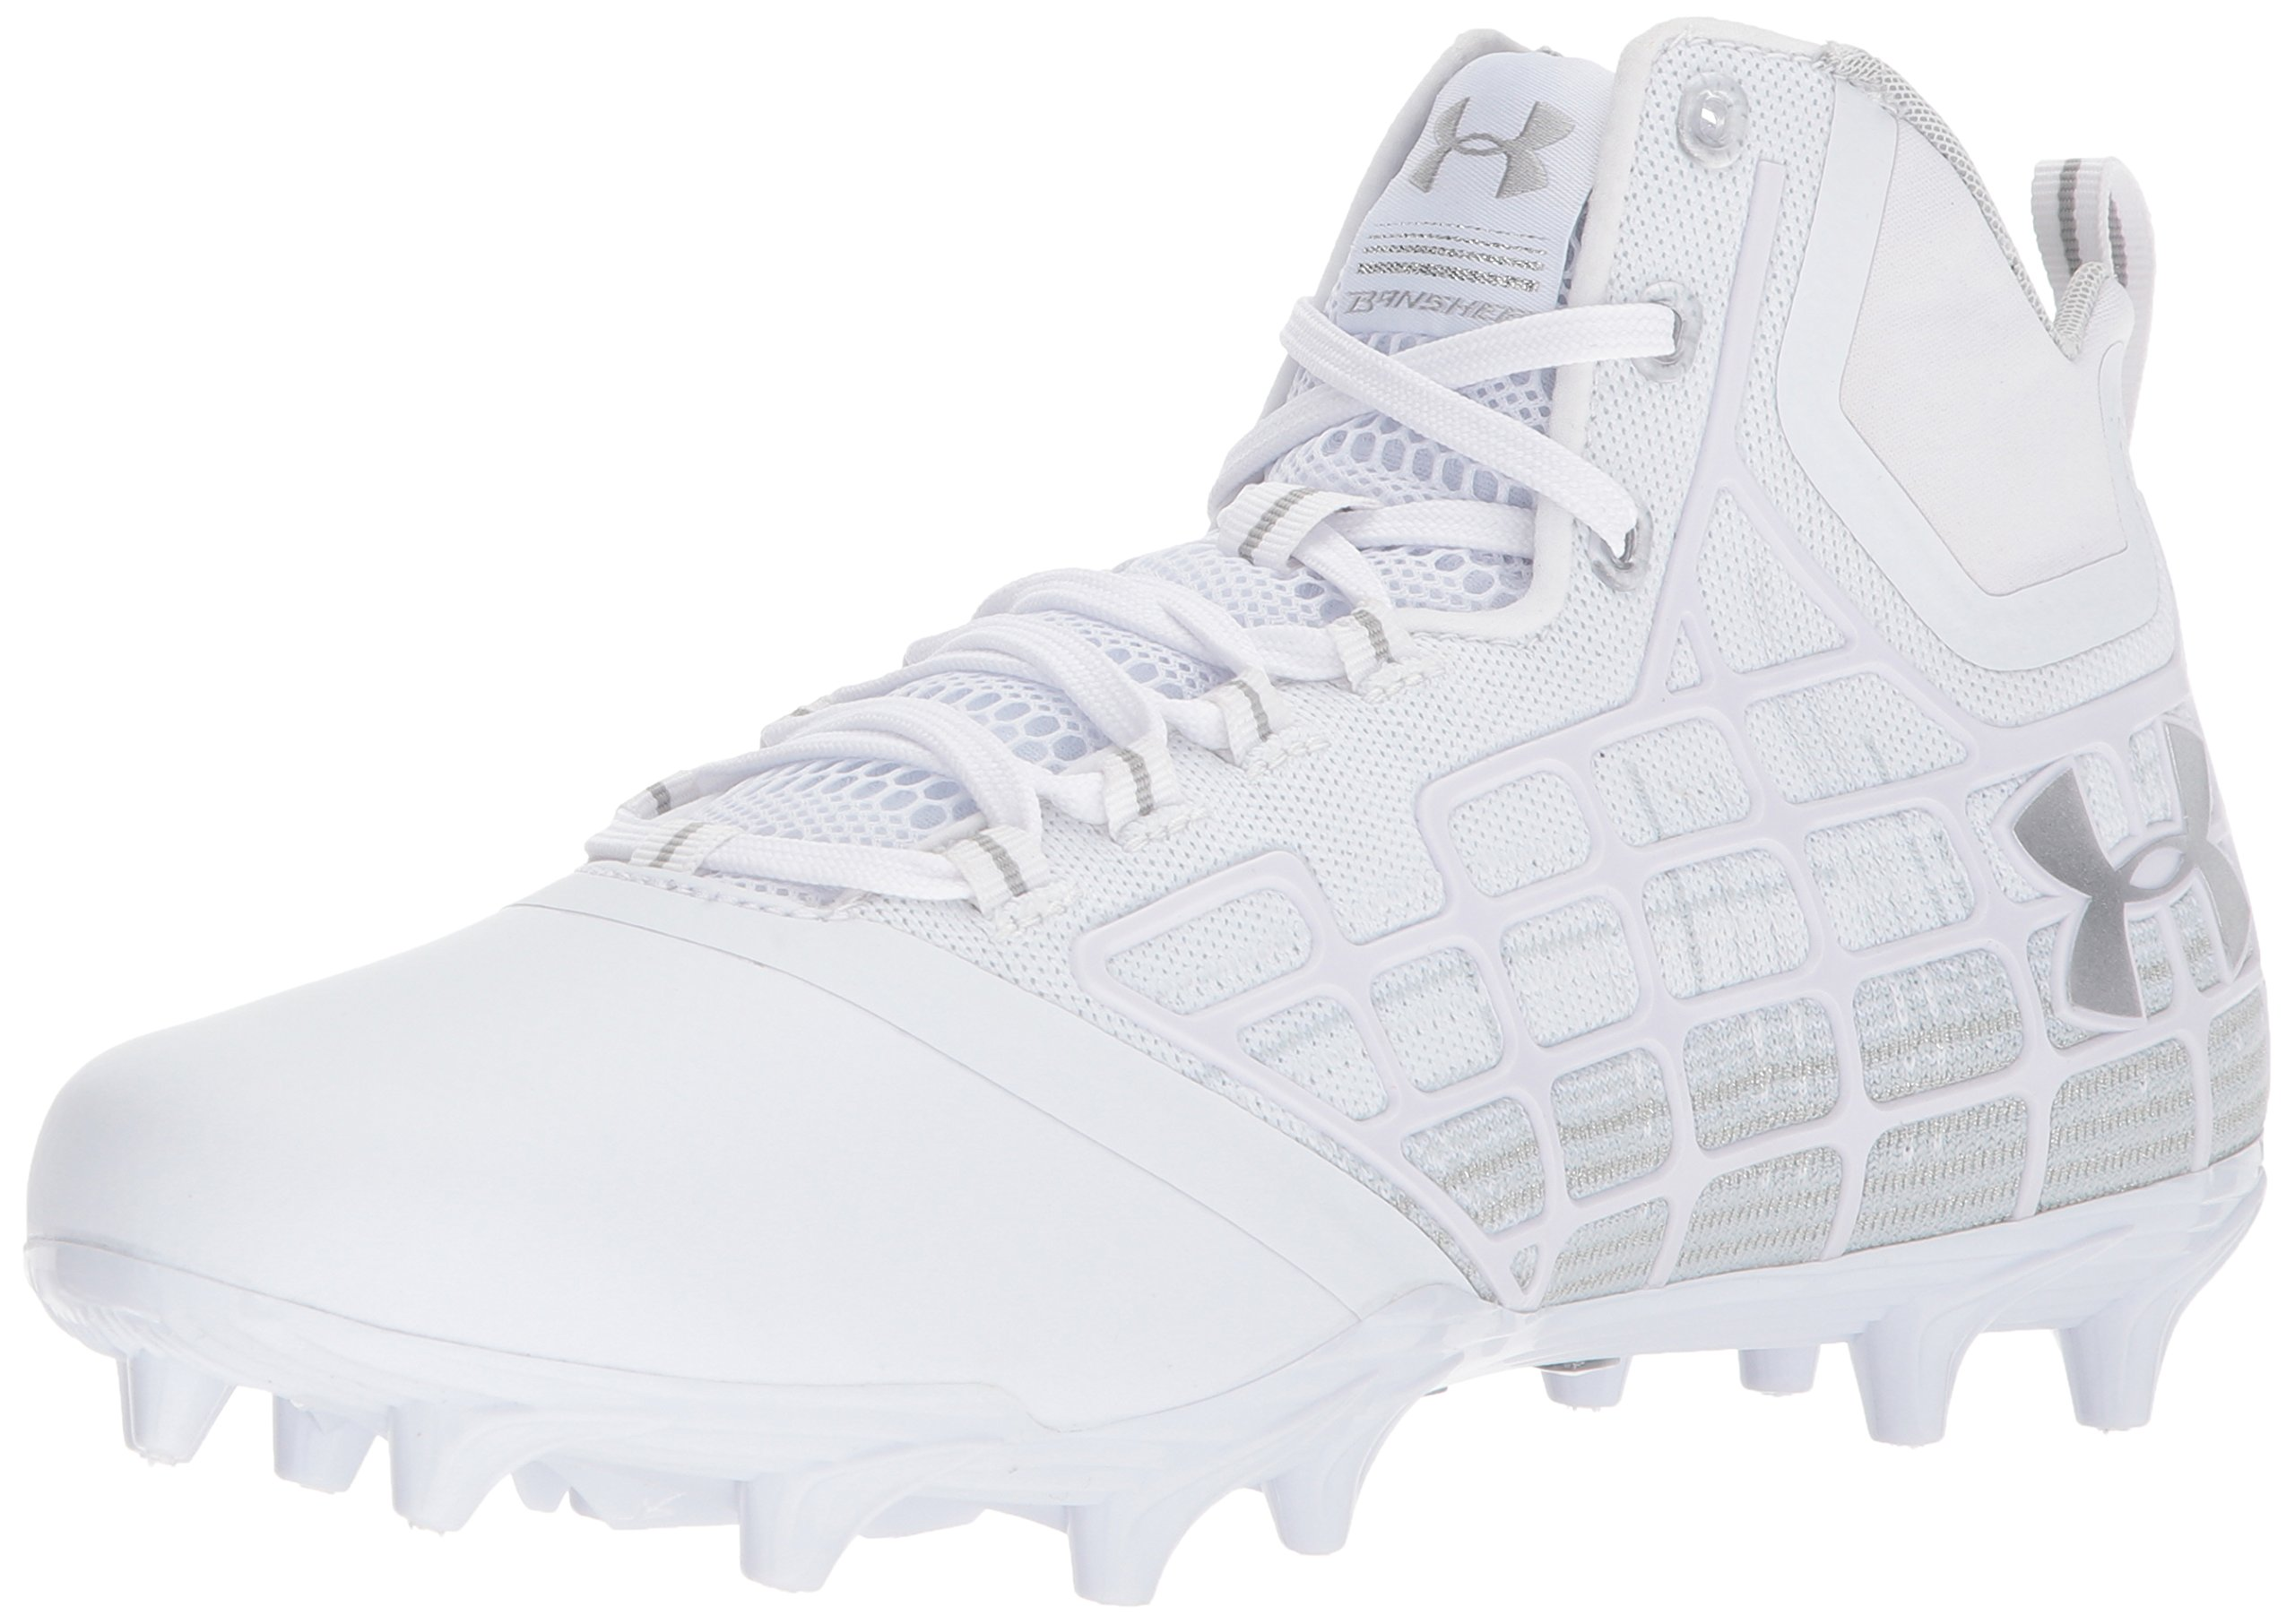 Under Armour Men's Banshee Mid MC Lacrosse Shoe, White (100)/Metallic Silver, 7.5